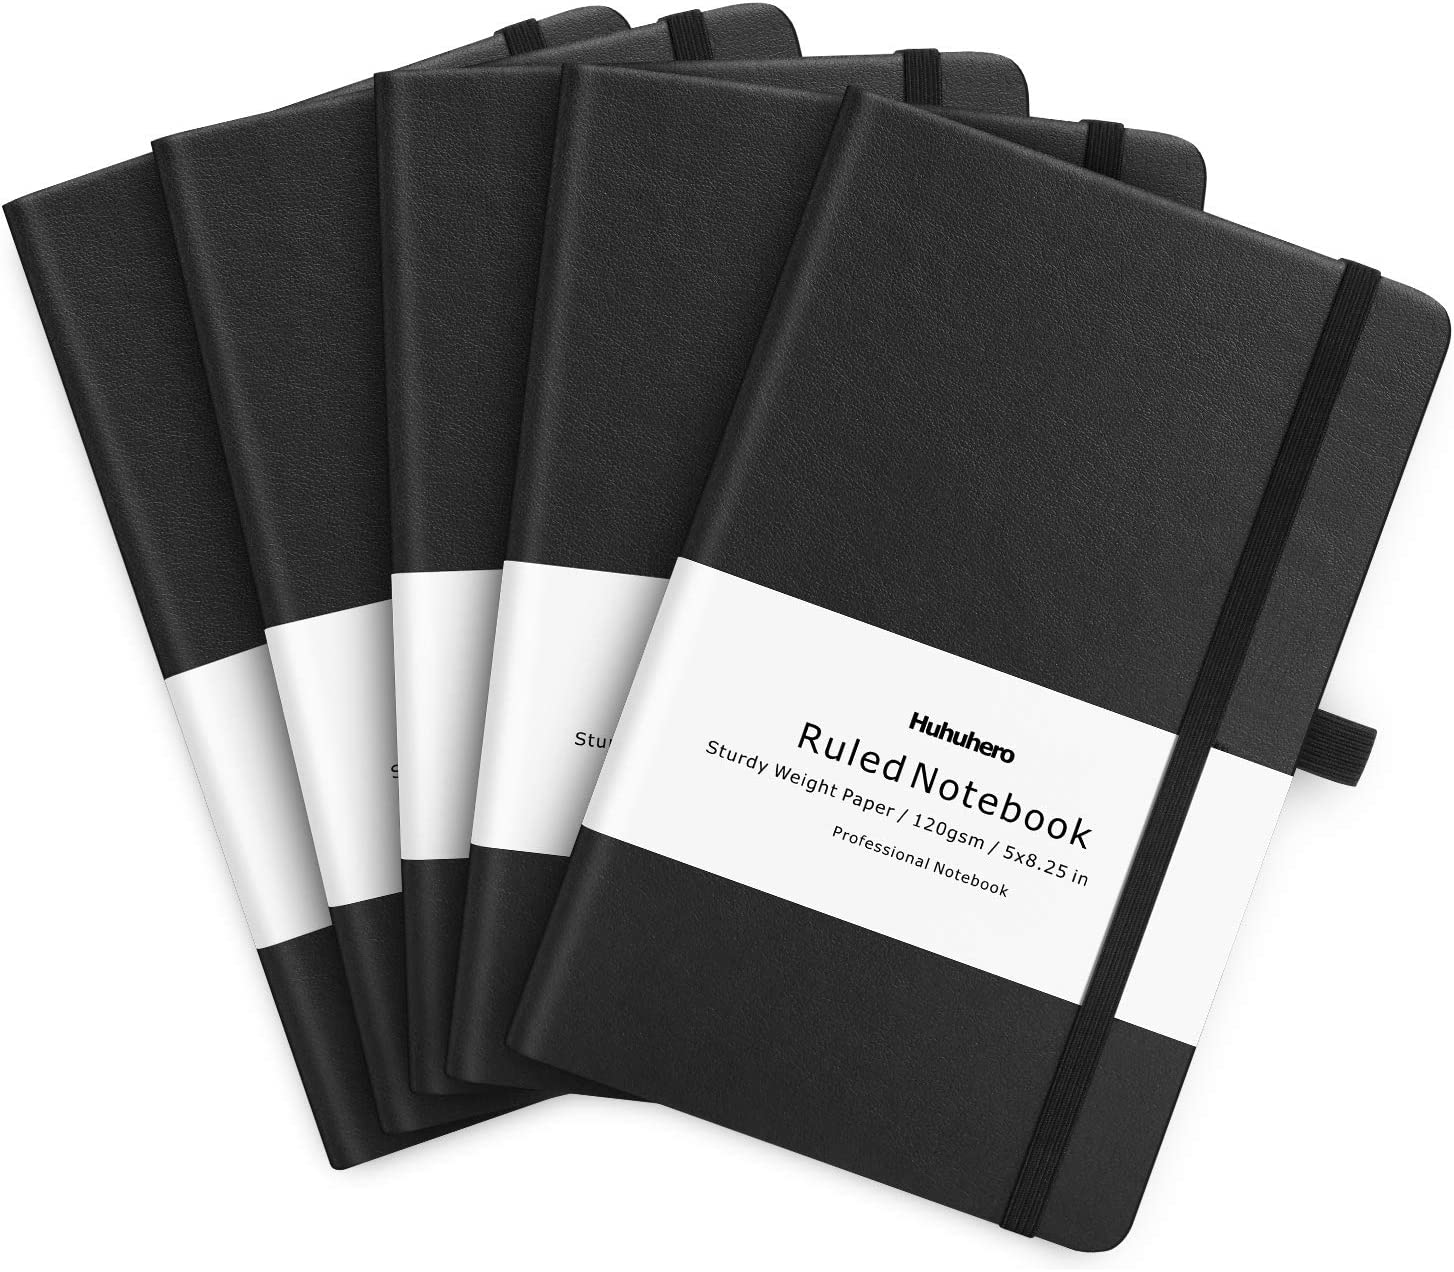 "Huhuhero 5 Pack Notebooks Journals, Classic Ruled Notebook, 120Gsm Premium Thick Paper Lined Journal, Black Hardcover Notebook for Office Home School Business Writing Note Taking Journaling, 5""×8.25"""